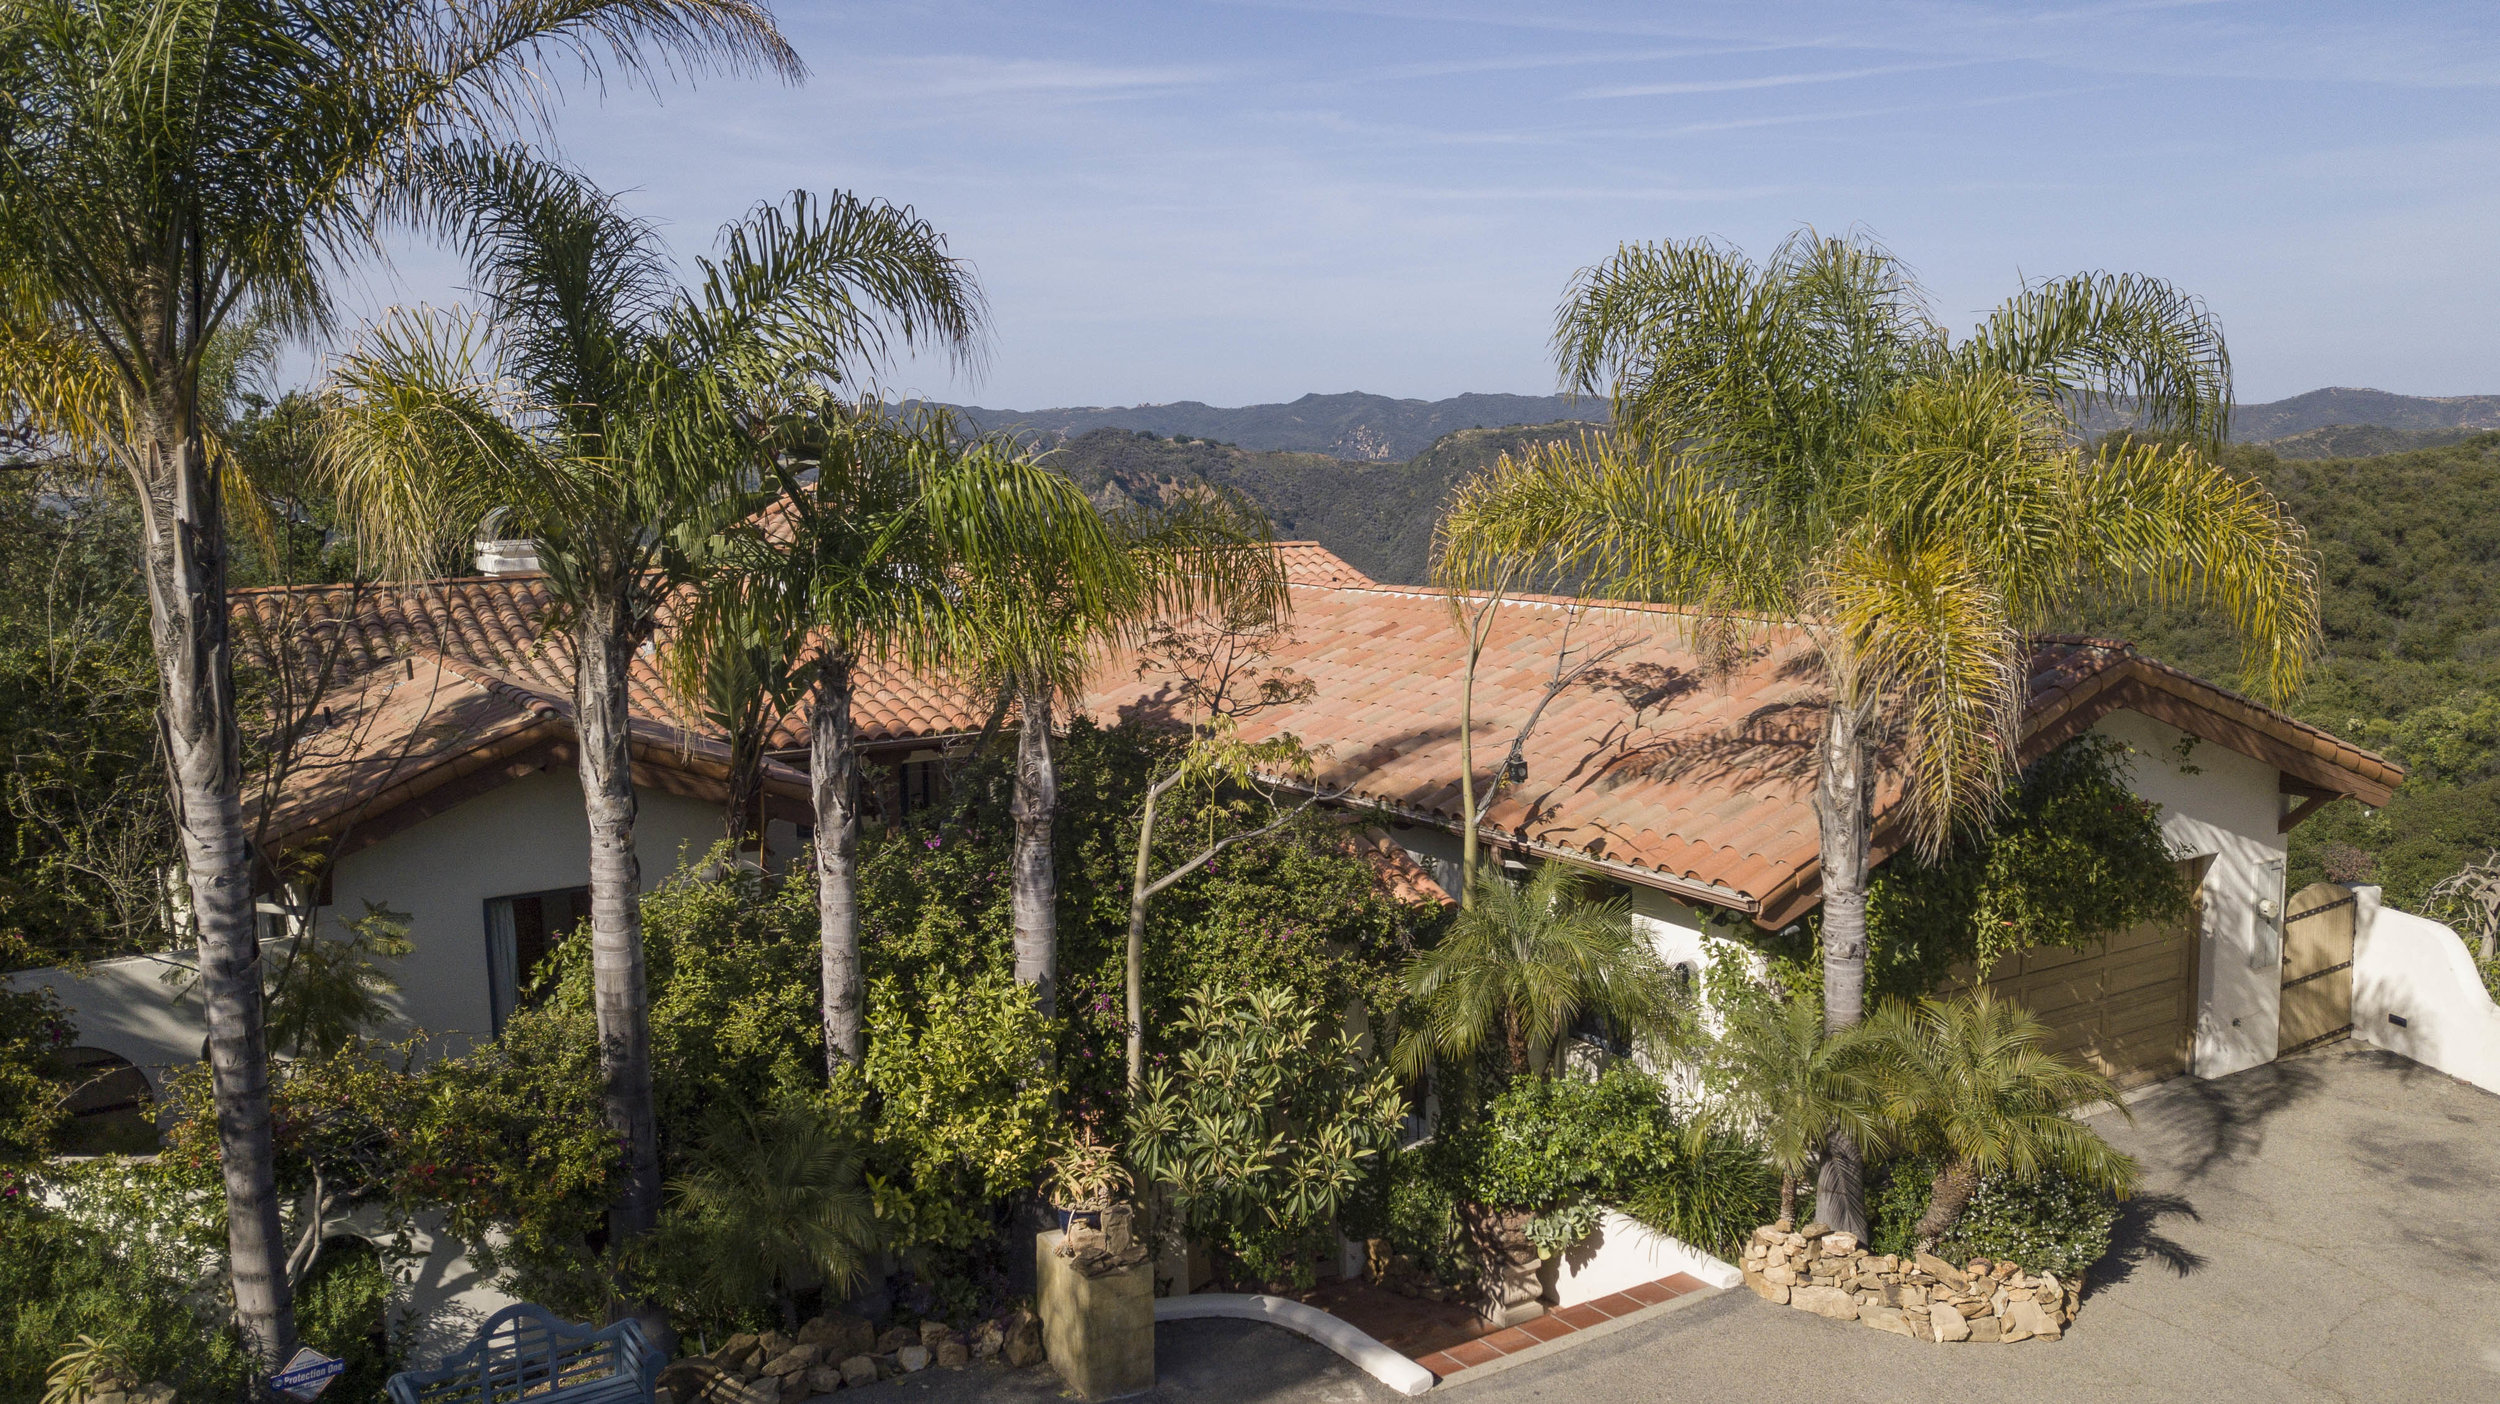 022 Front 20333 Reigate Road Topanga For Sale Lease The Malibu Life Team Luxury Real Estate.jpg